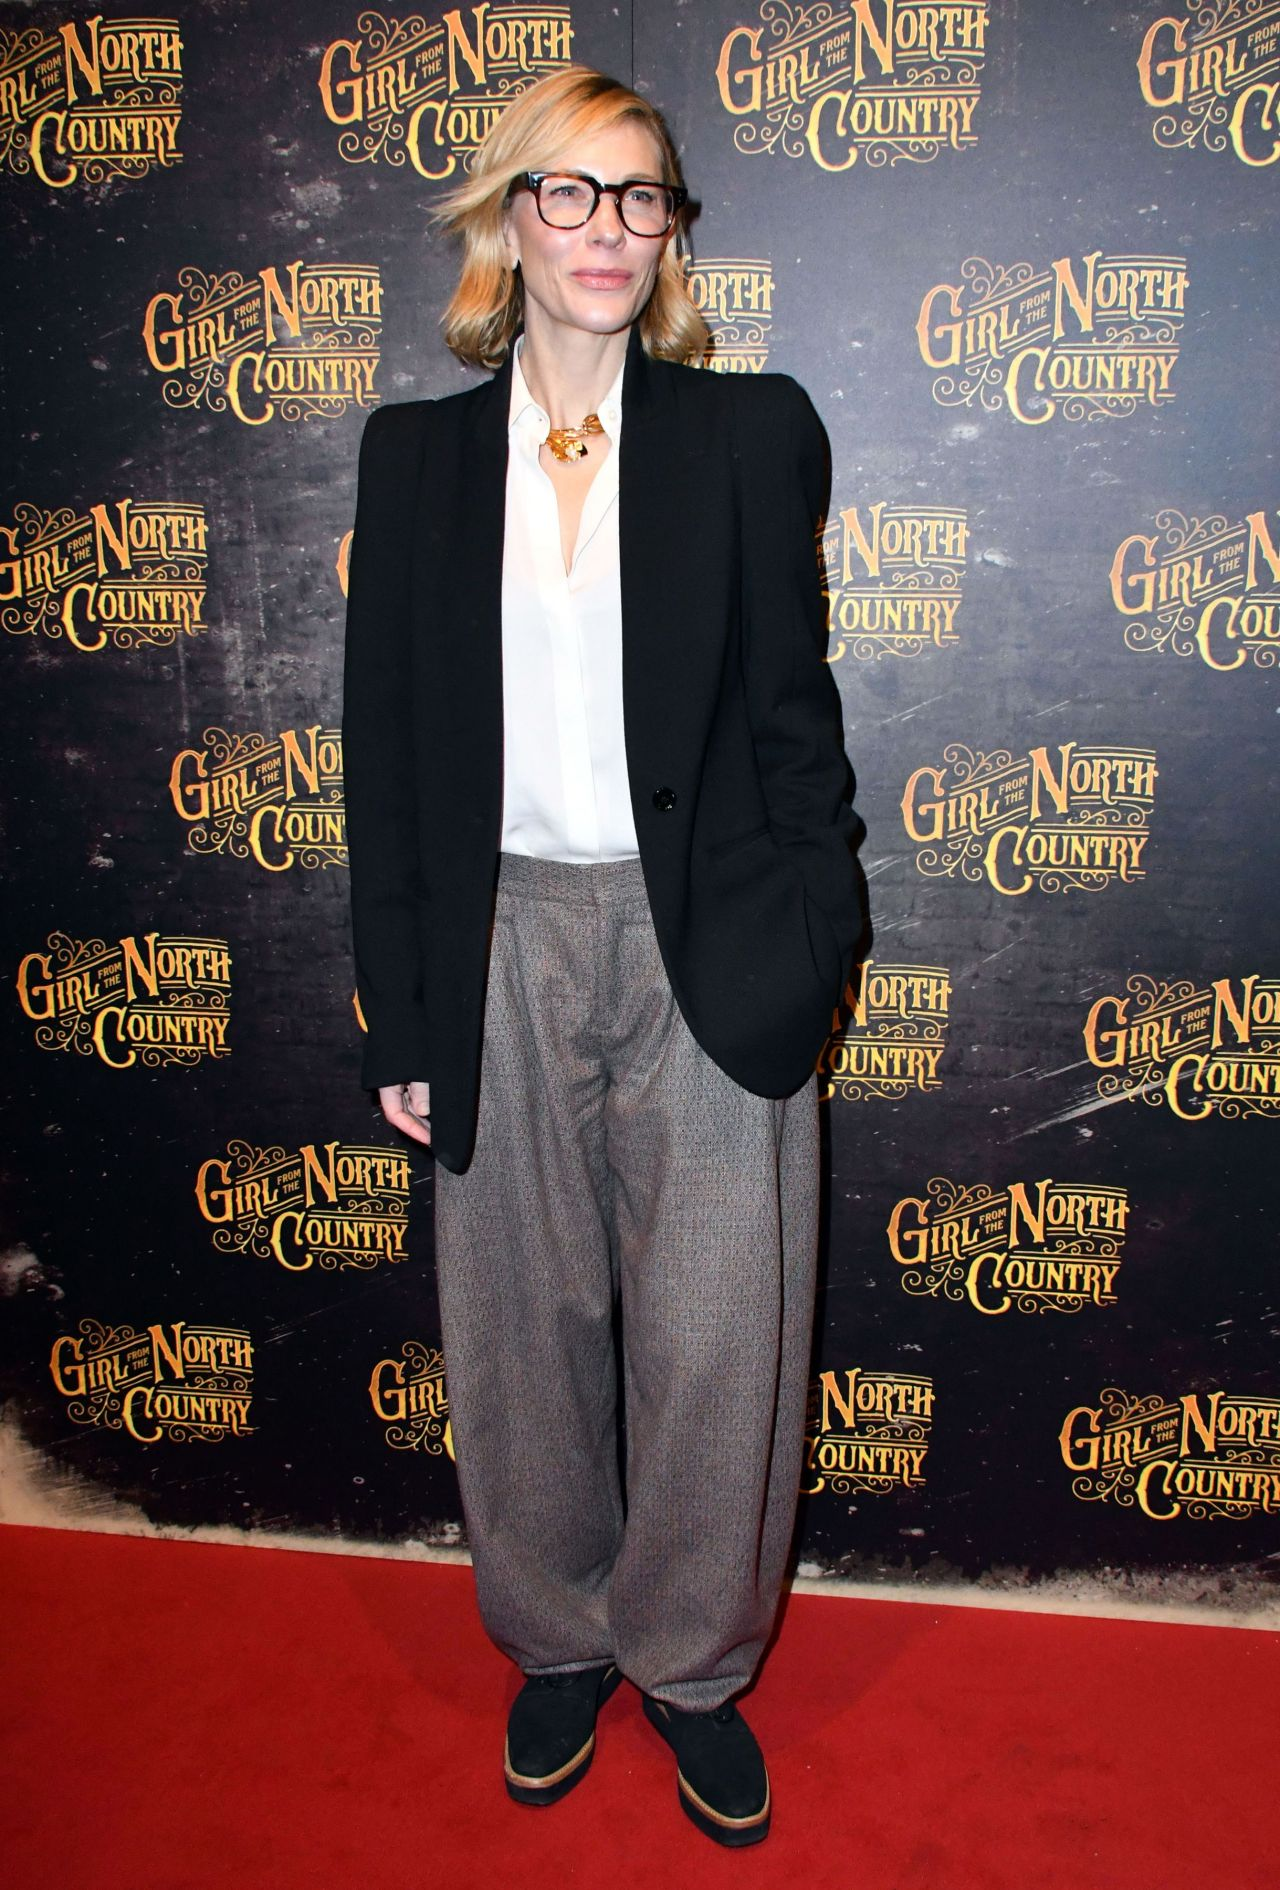 http://celebmafia.com/wp-content/uploads/2018/01/cate-blanchett-girl-from-the-north-country-play-opening-night-in-london-6.jpg